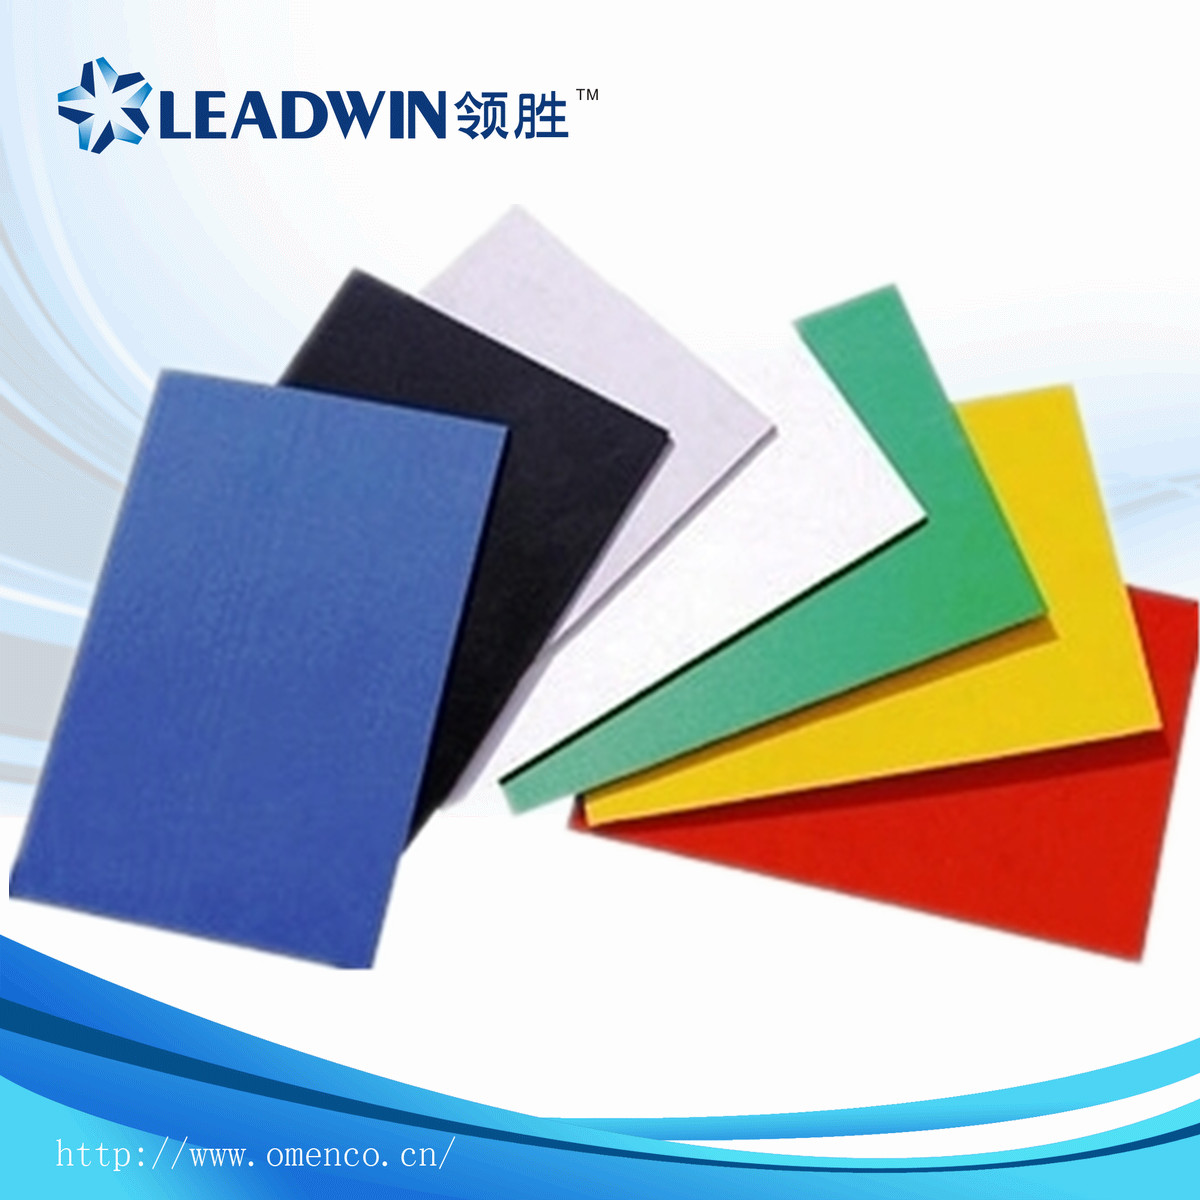 Leadwin High Quality pvc sheets black